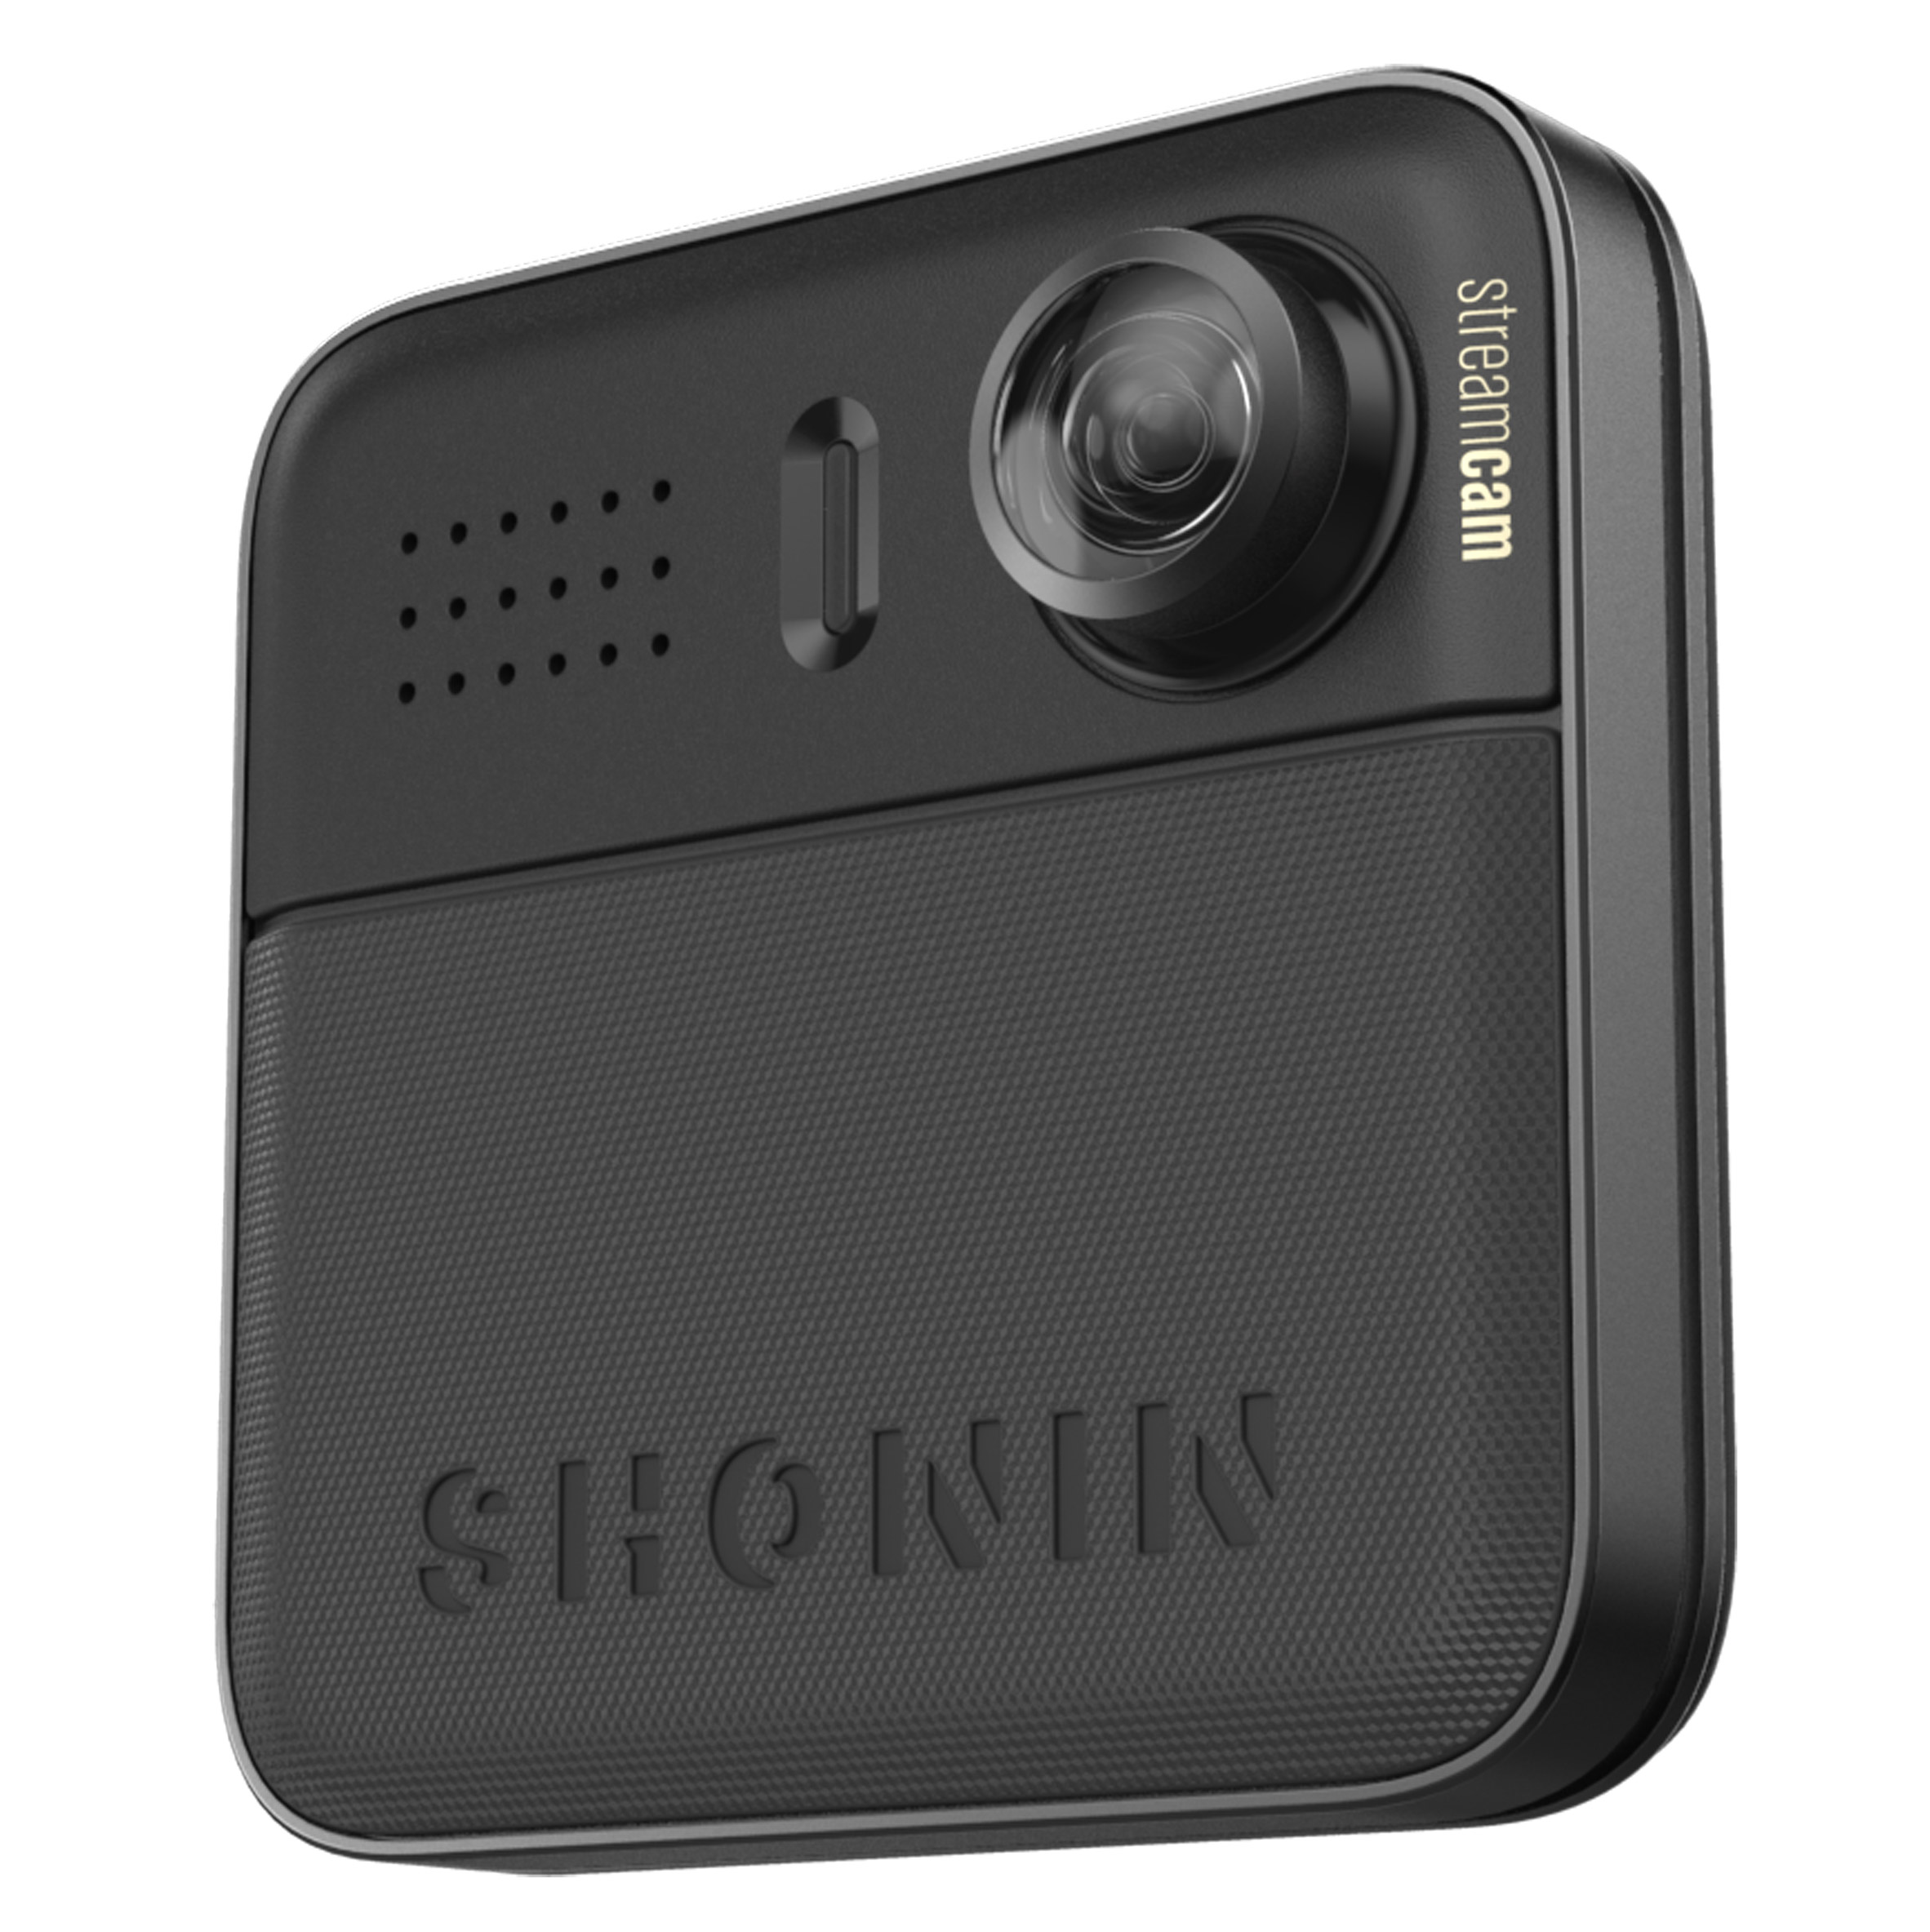 Shonin bodycam aims to bring justice to victims of violent crime